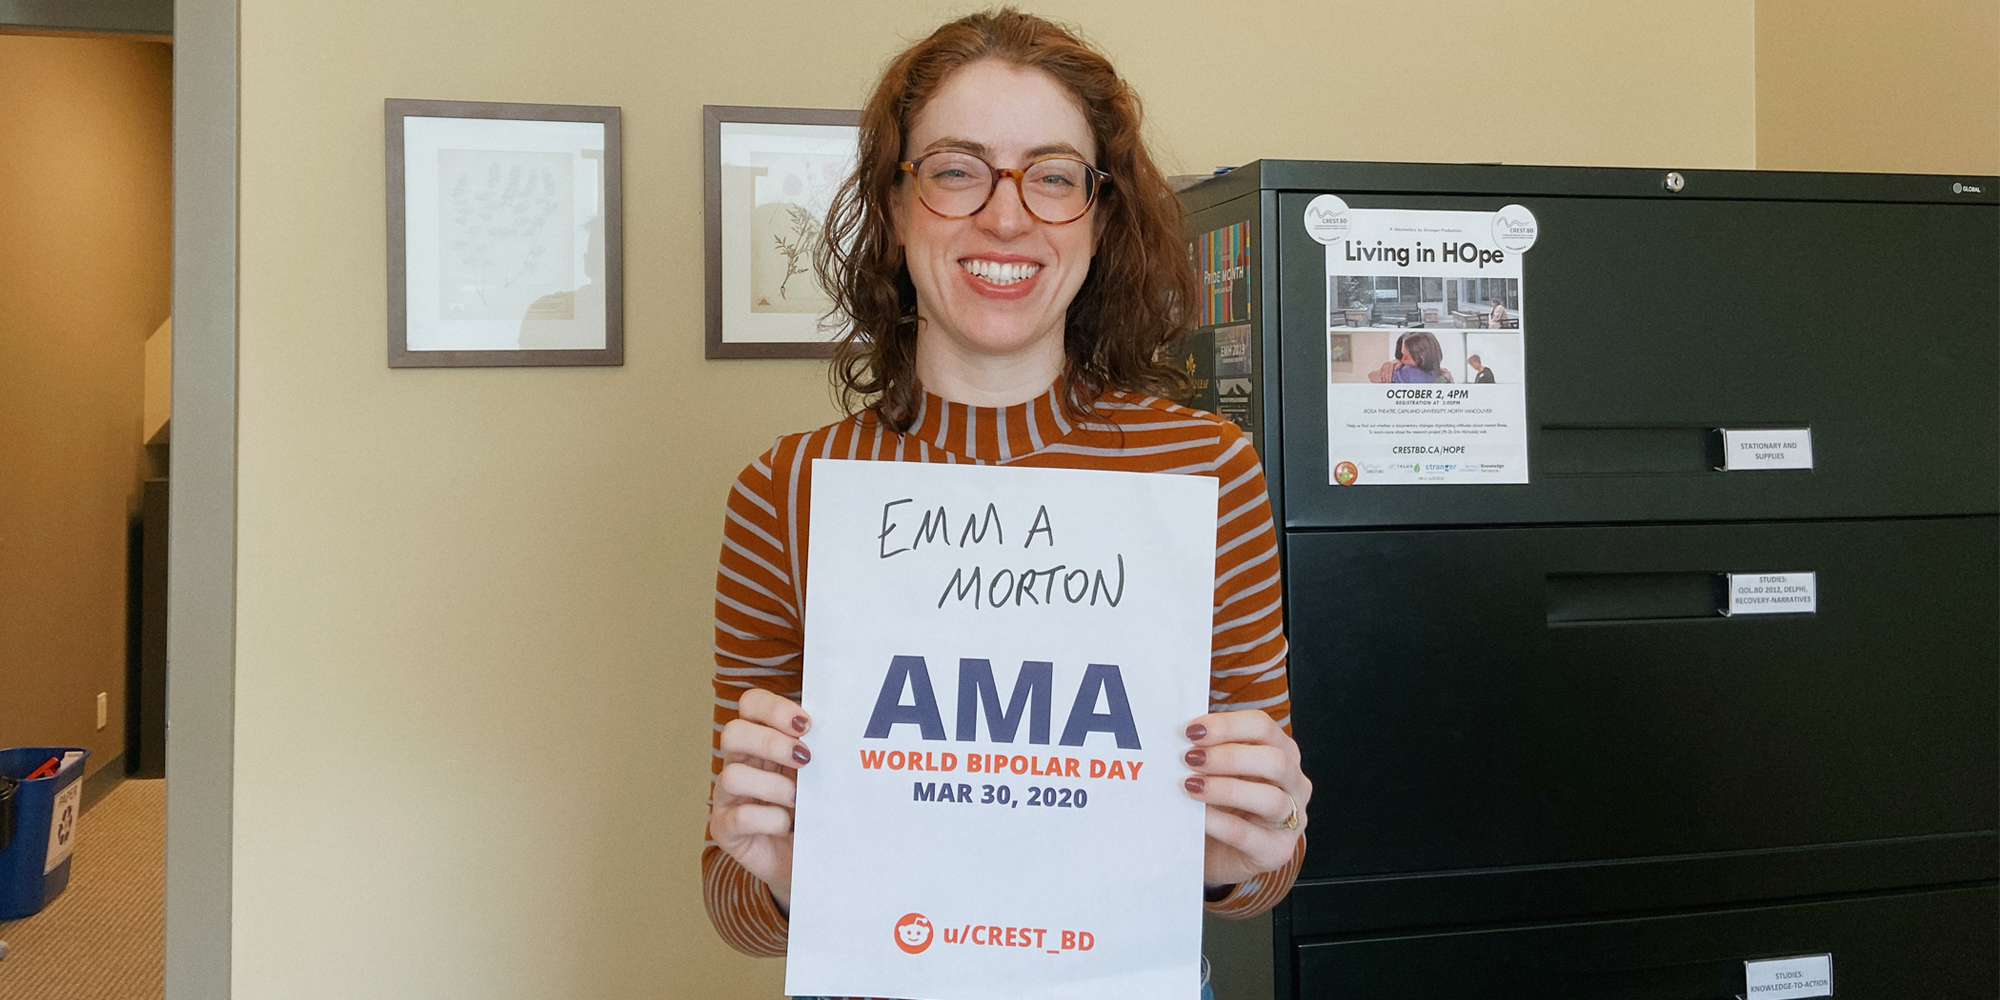 Emma in her office, smiling and holding a sign proving she will be involved in the bipolar ama.